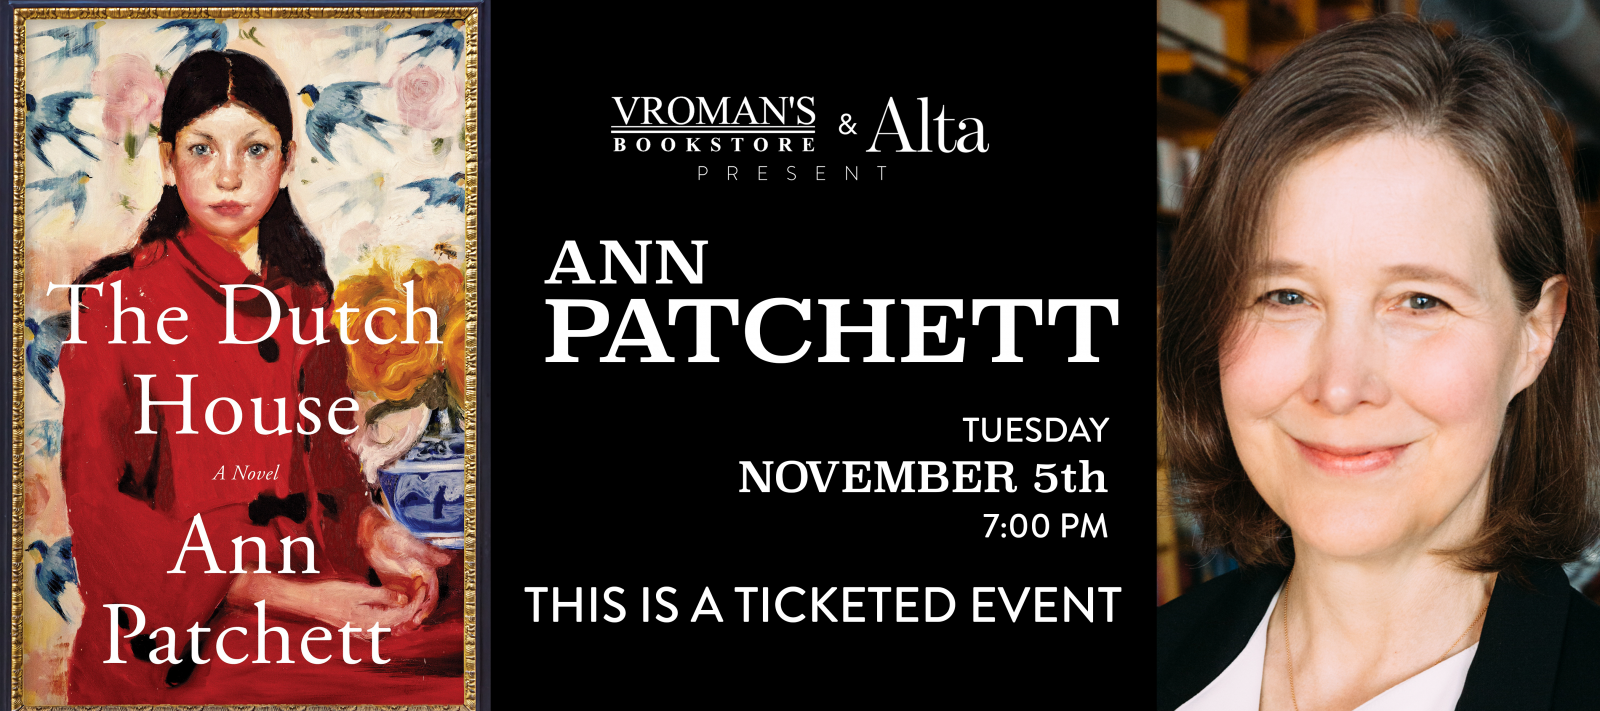 Ann Patchett book signing November 5th at 7pm